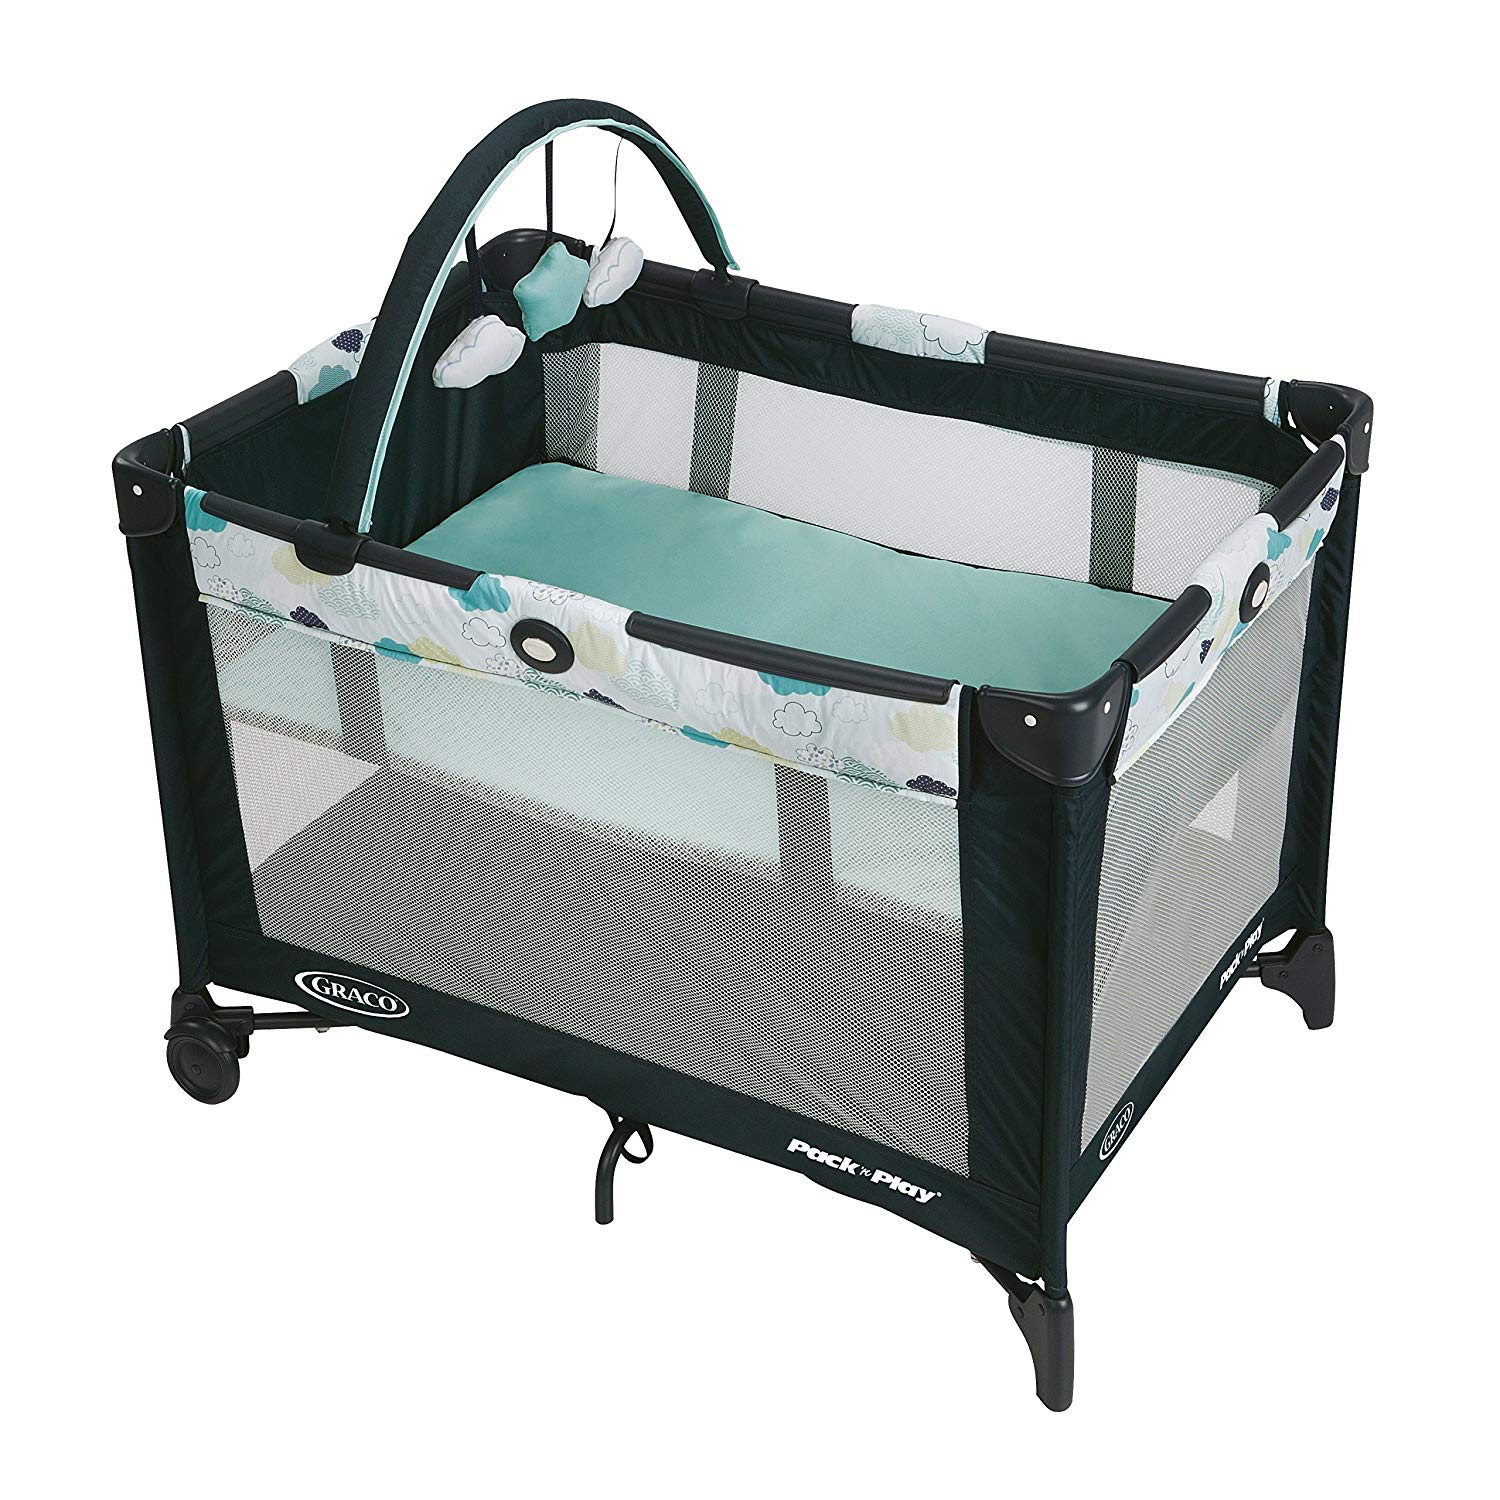 Graco pack 'n play review classic